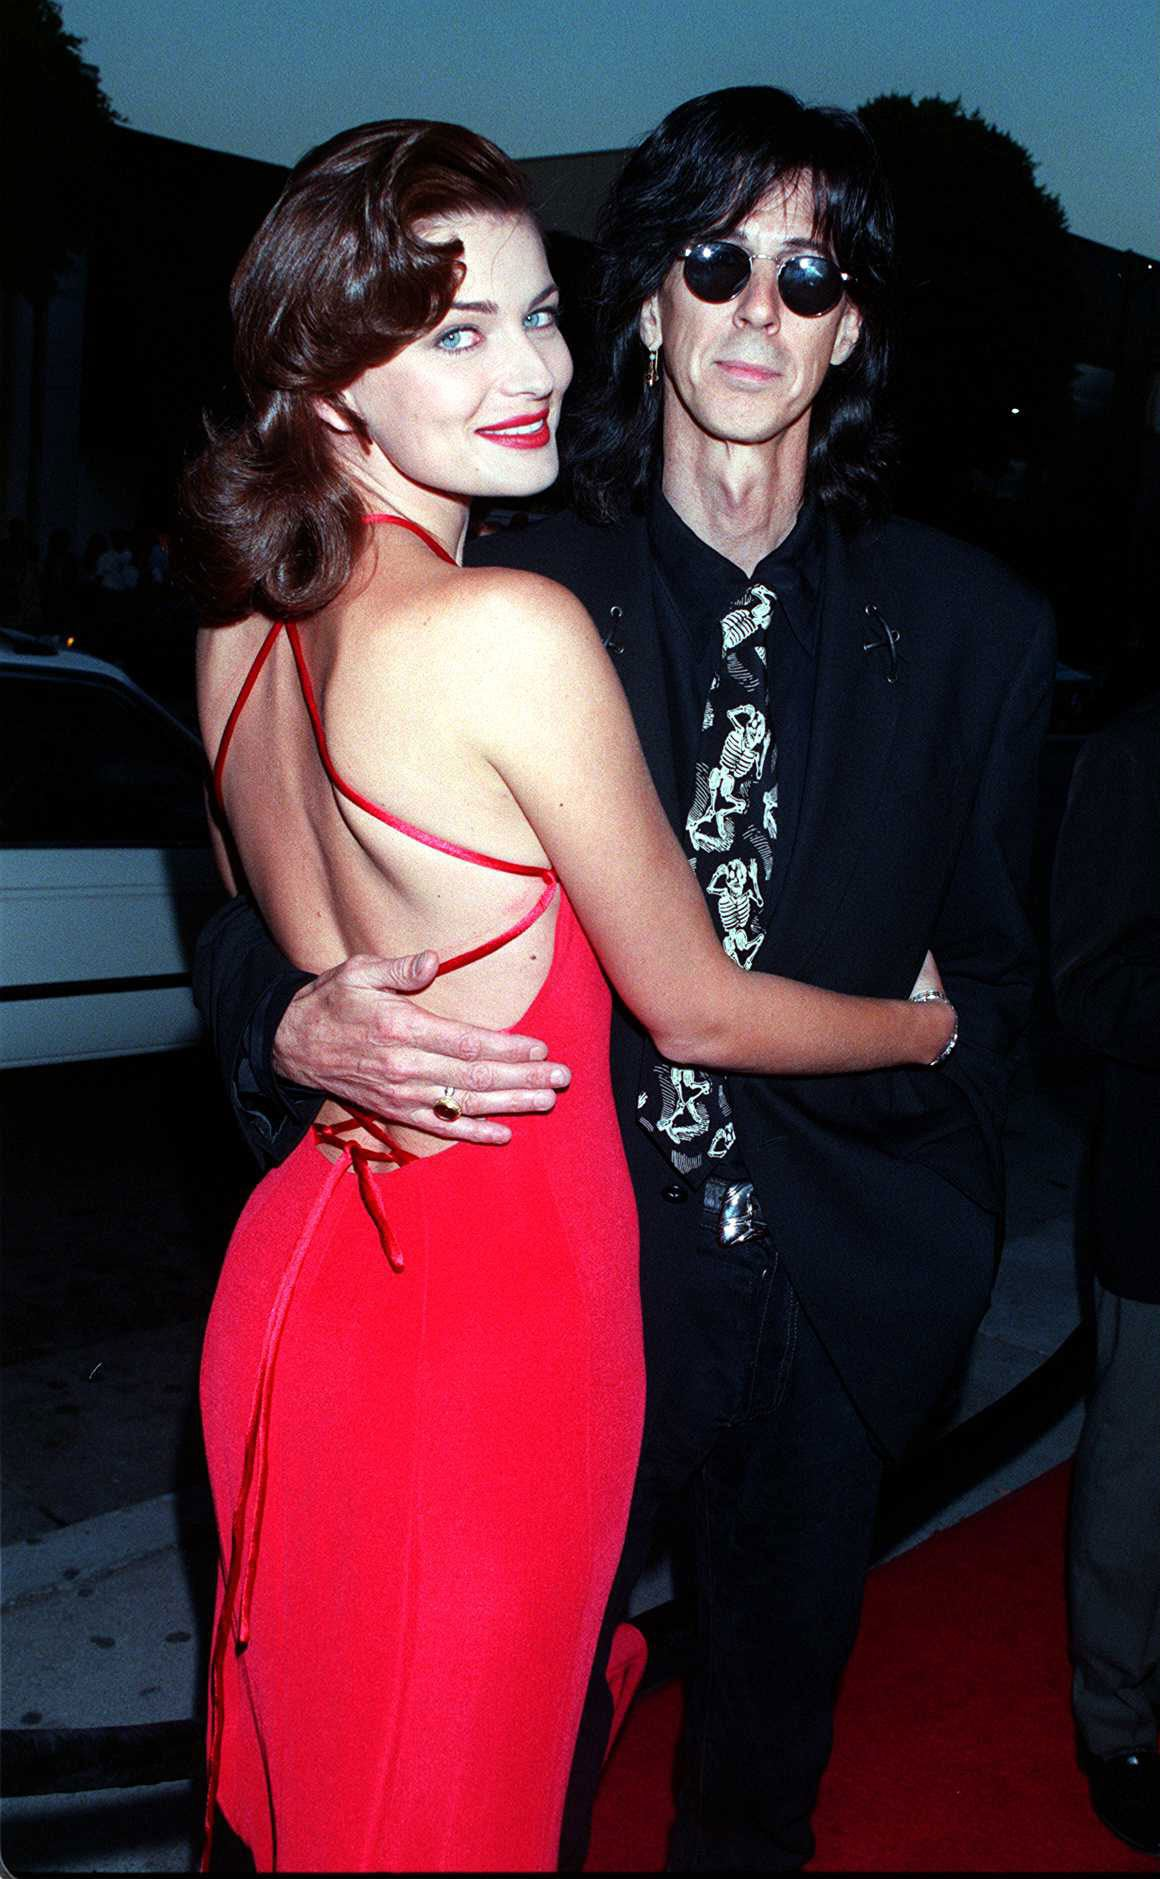 Paulina Porizkova and Ric Ocasek, lead singer for The Cars, have been married since 1989.